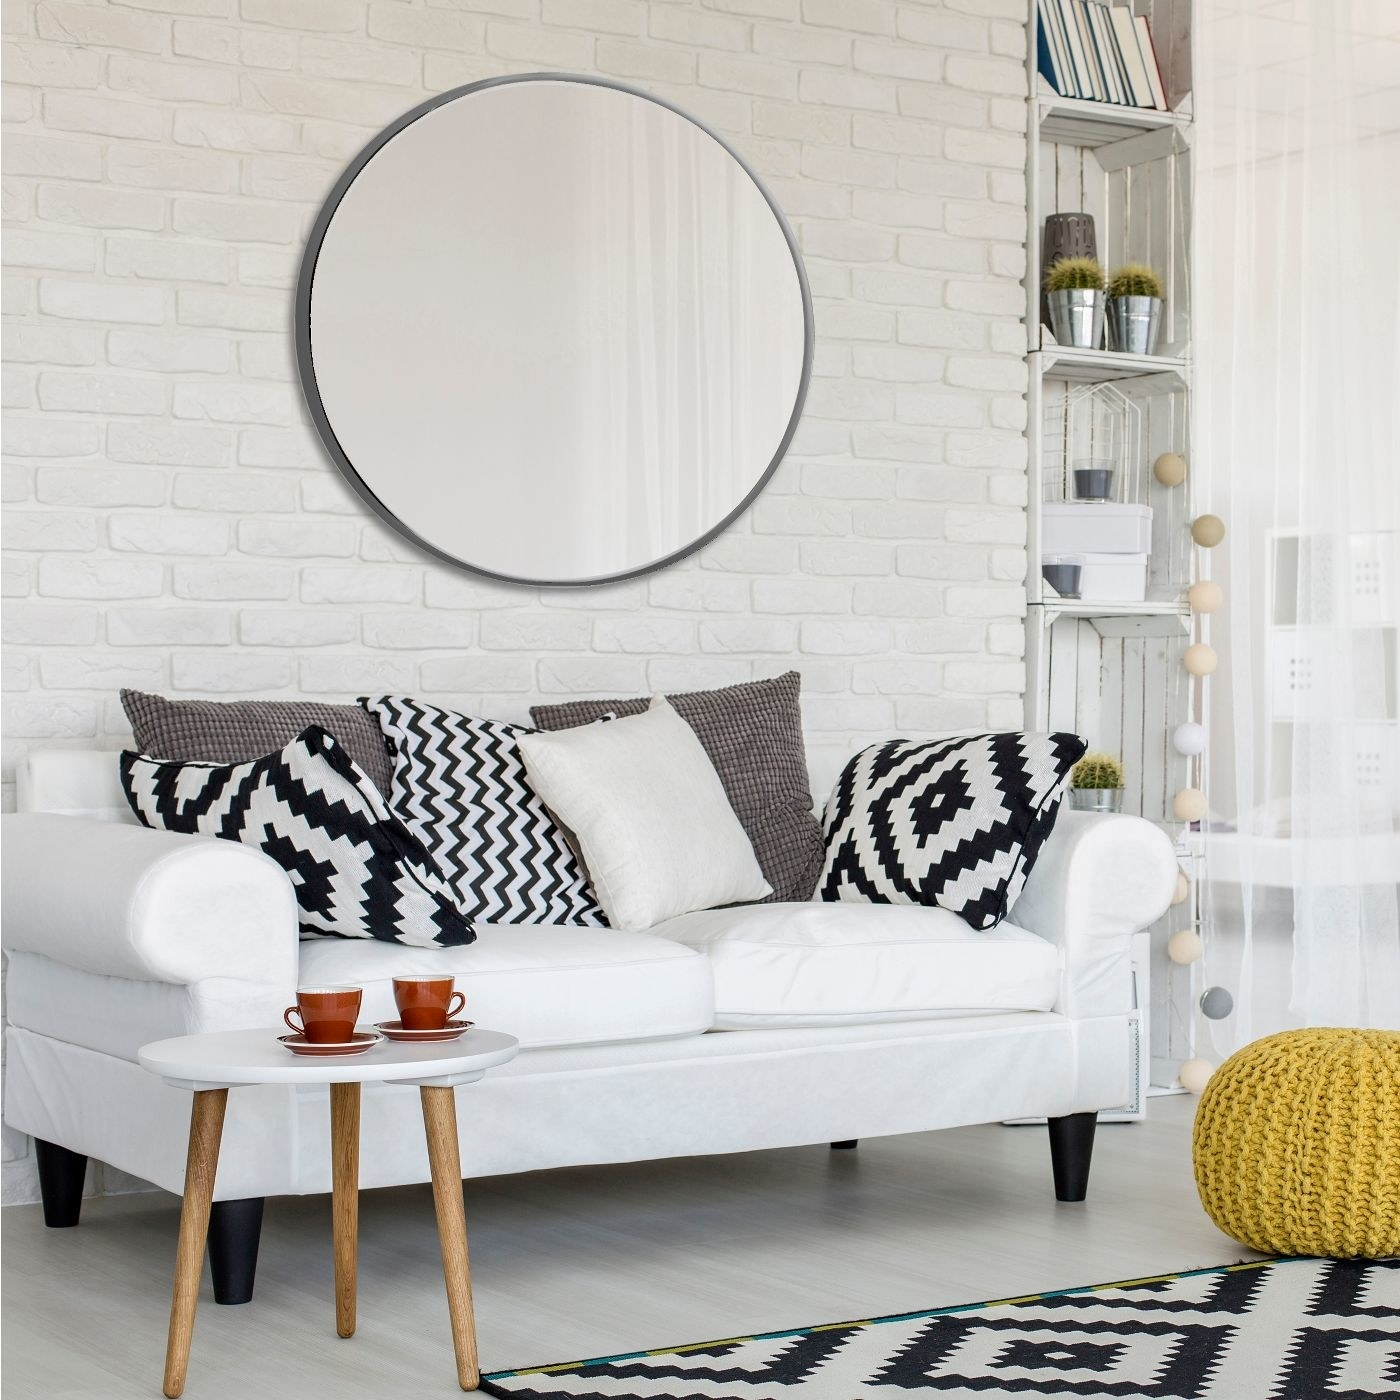 round wall mirror with silver frame hung above white sofa with throw pillows